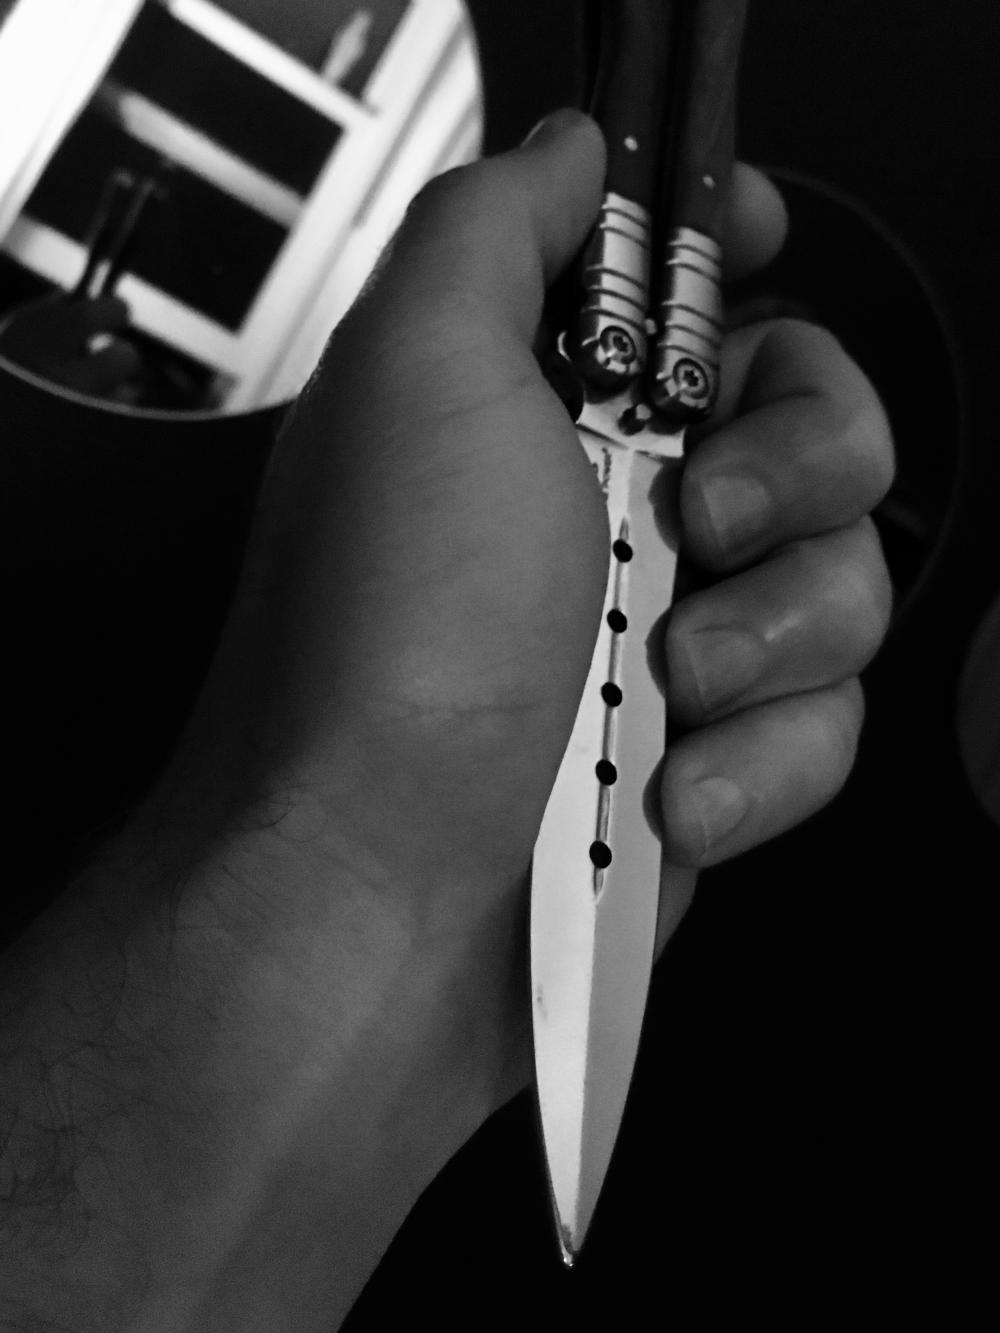 Black and white knife phootshoot